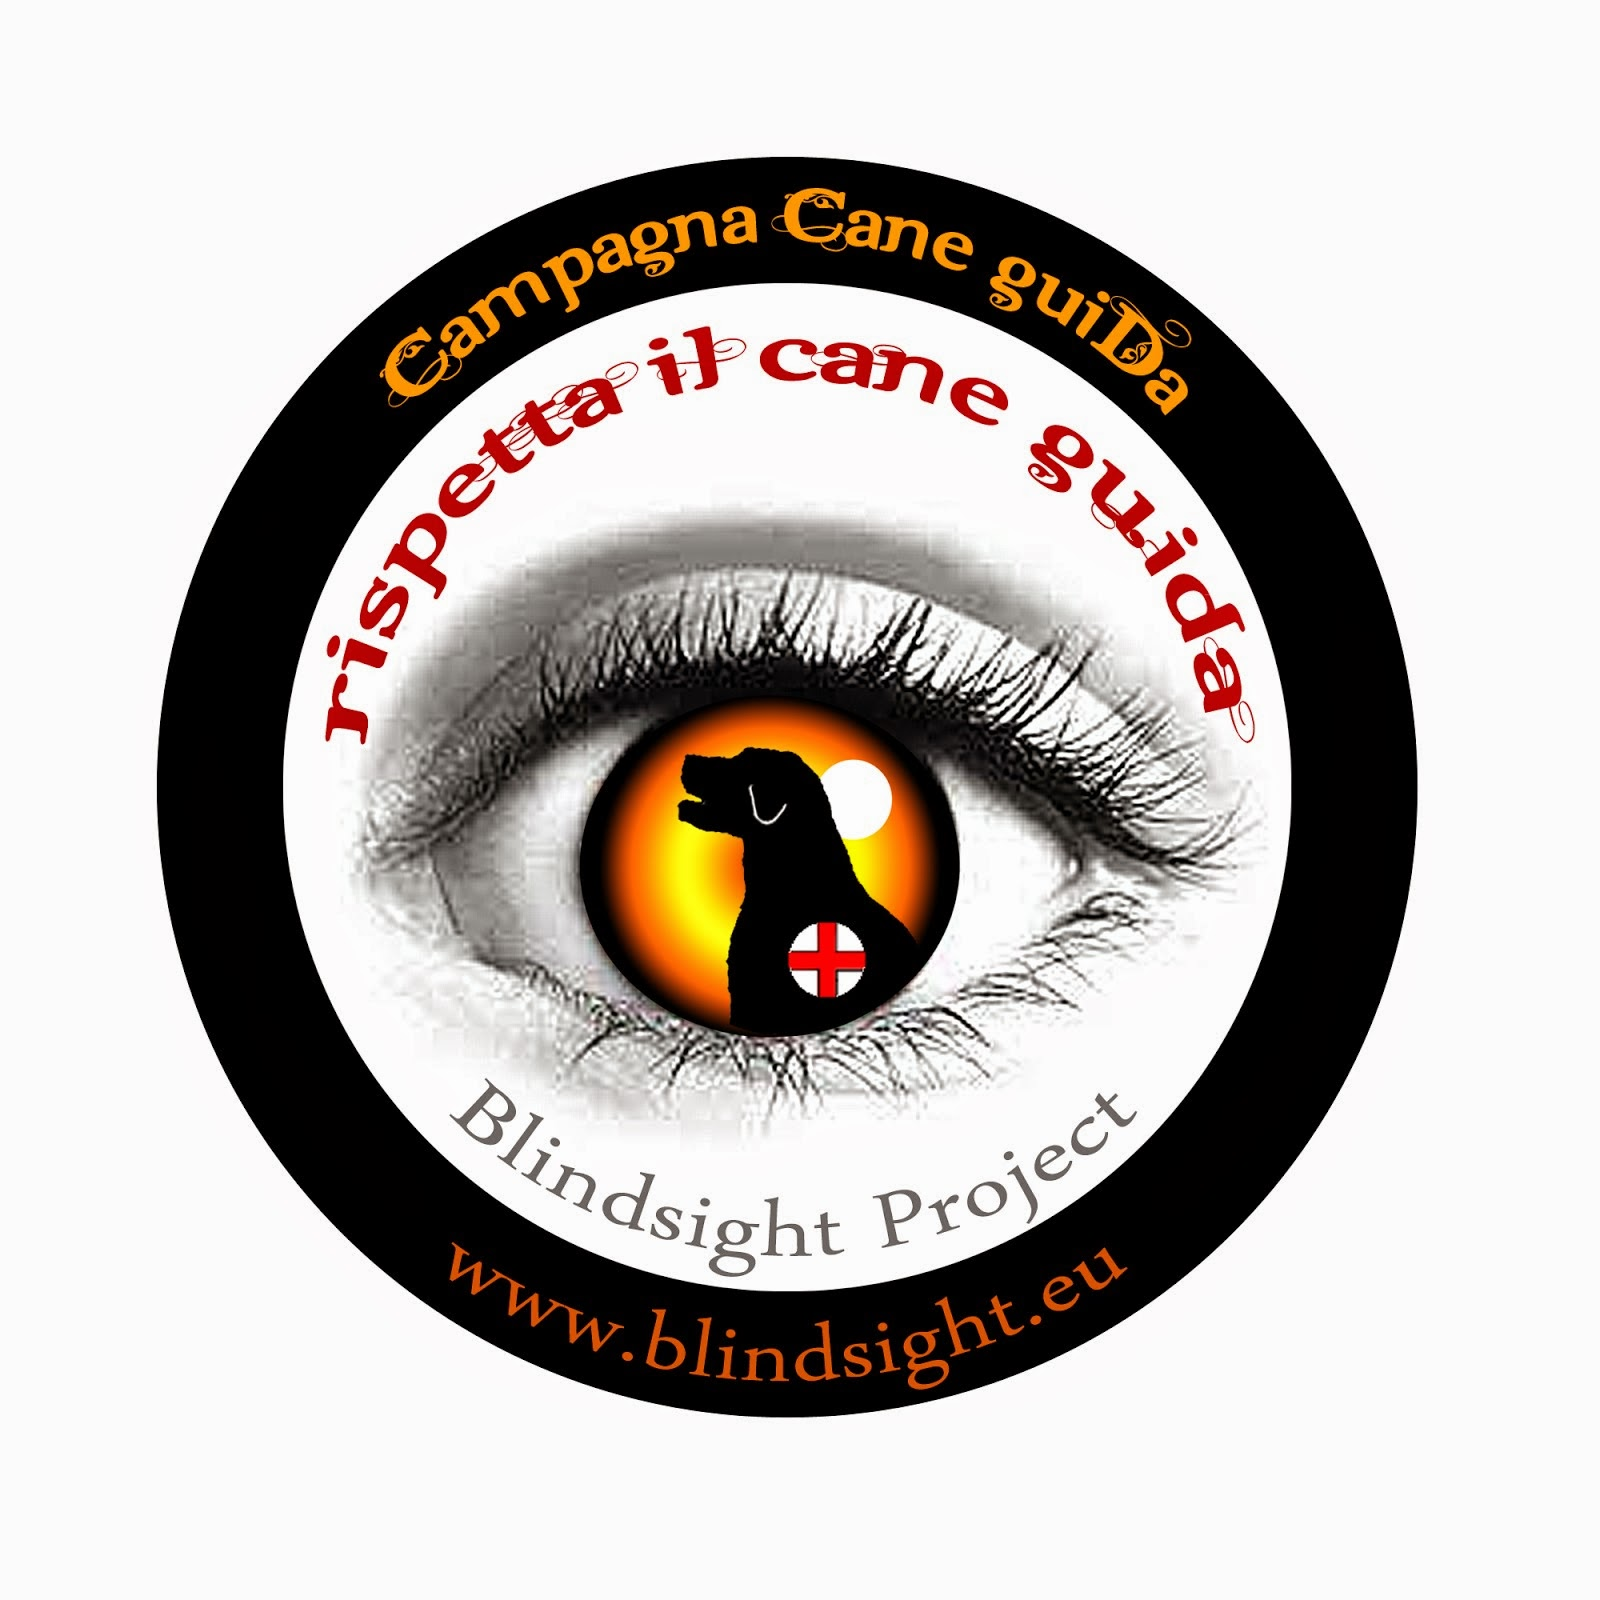 DIFFONDI LA CAMPAGNA CANE GUIDA BLINDSIGHT PROJECT